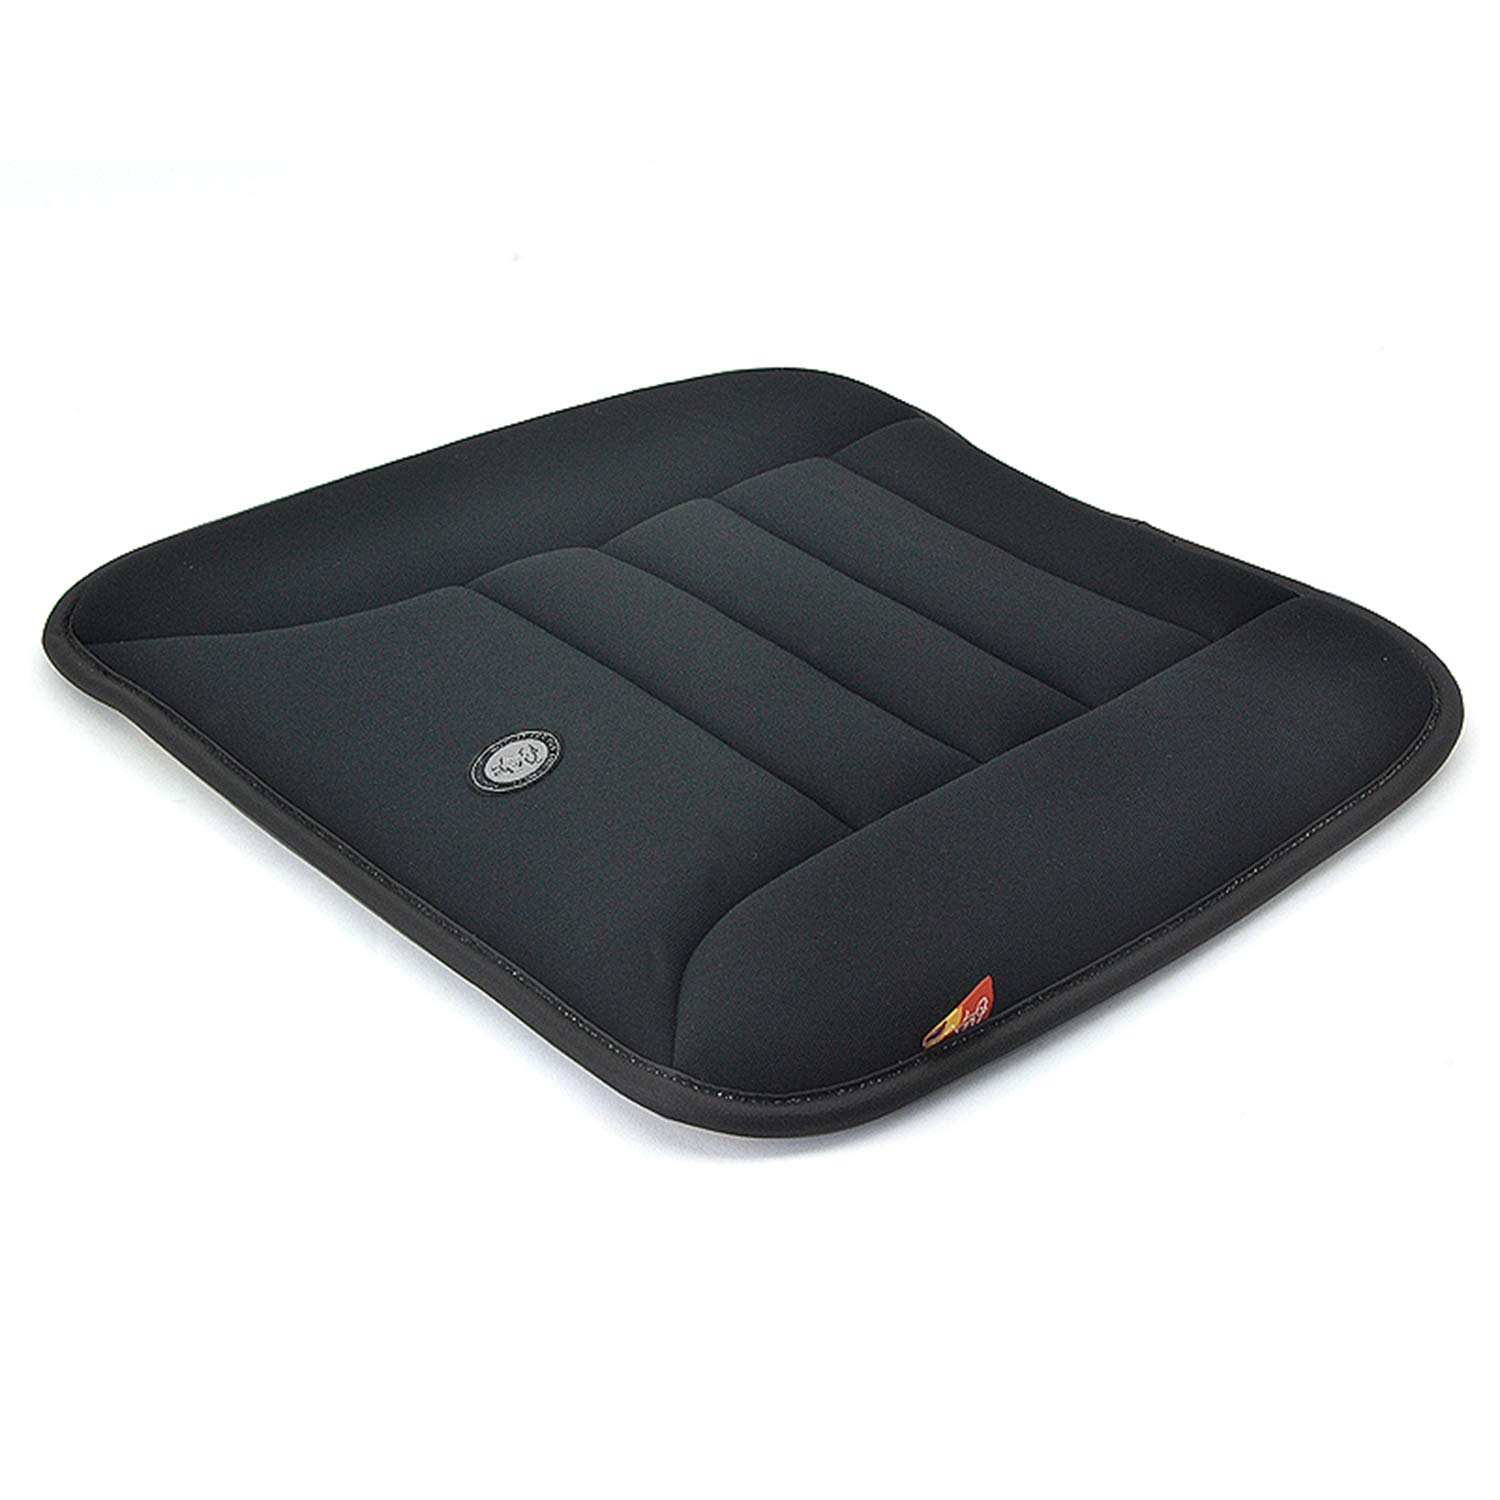 Car Memory Foam Seat Cushion - Easy Install Universal Seat Pad, Anti Slip Auto Office Chair Comfort Cover, Pressure Relief Seat Protector - Black